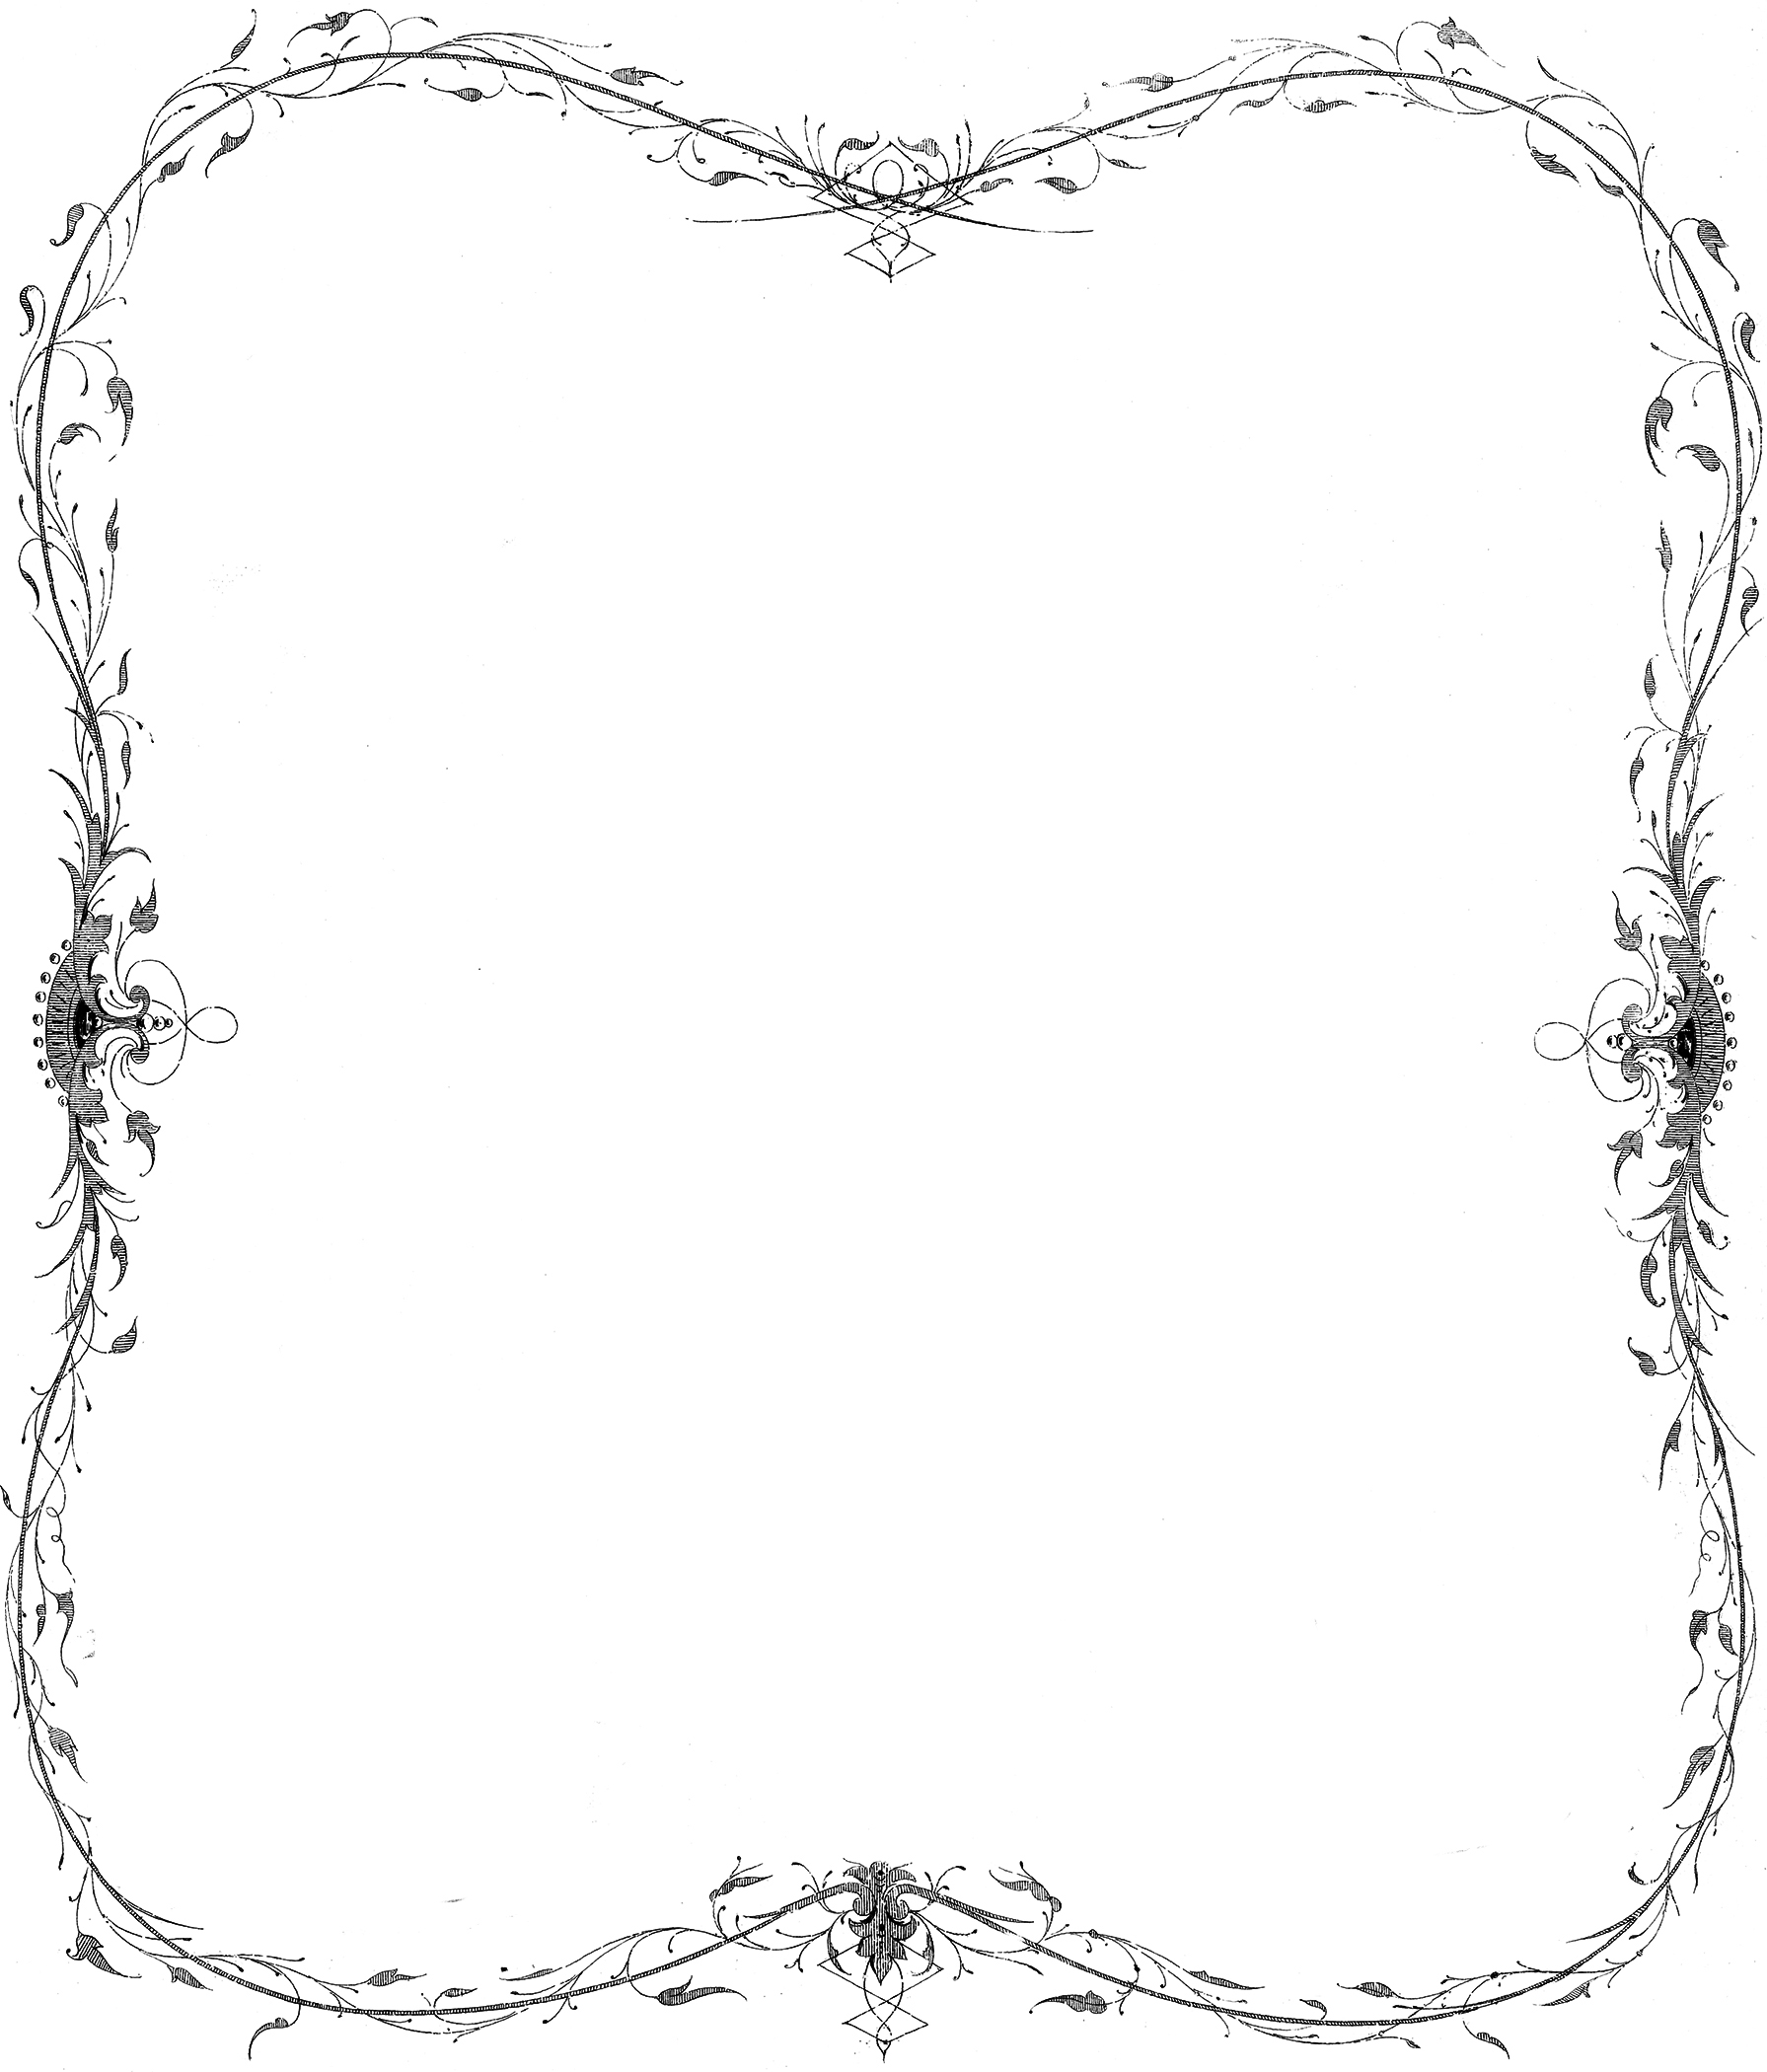 Delicate Antique Frame Image